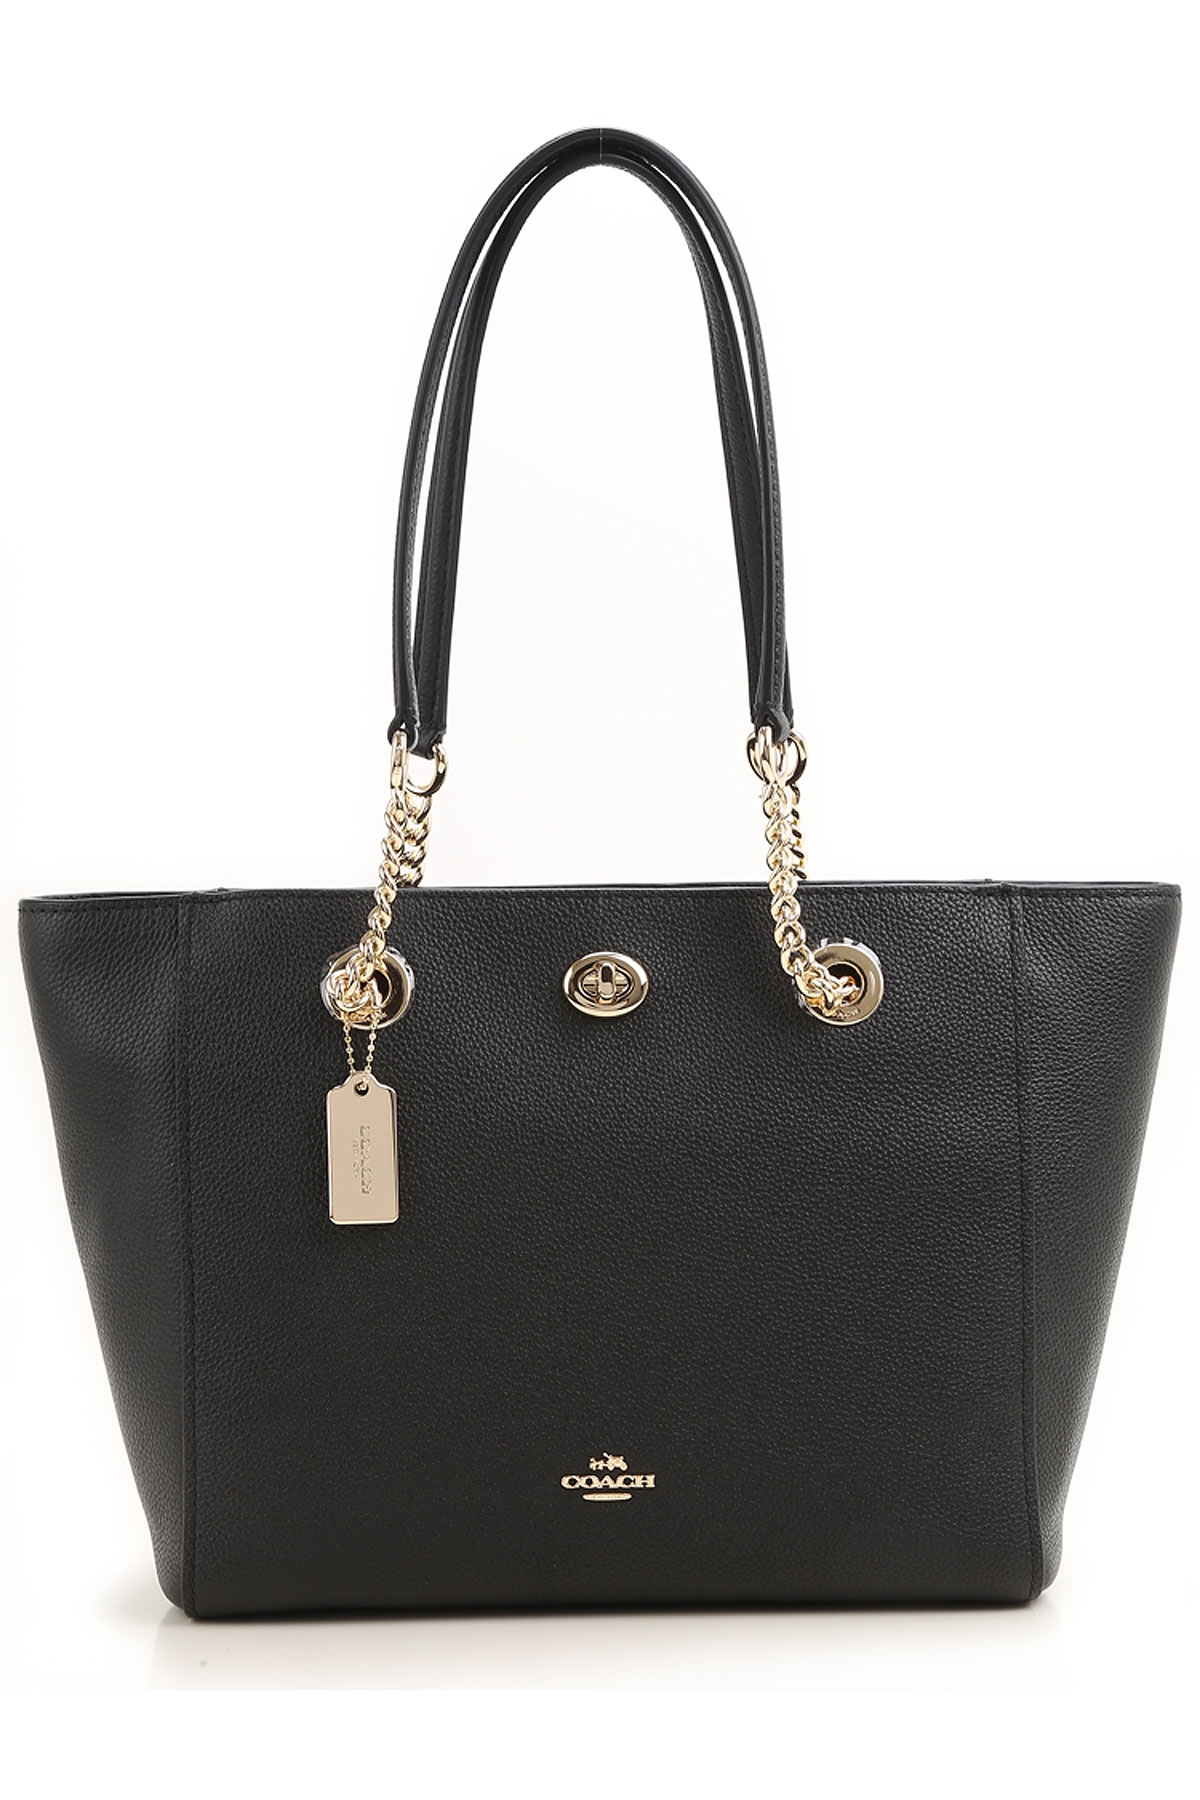 Coach Tote Bag On Sale, Black, Leather, 2019